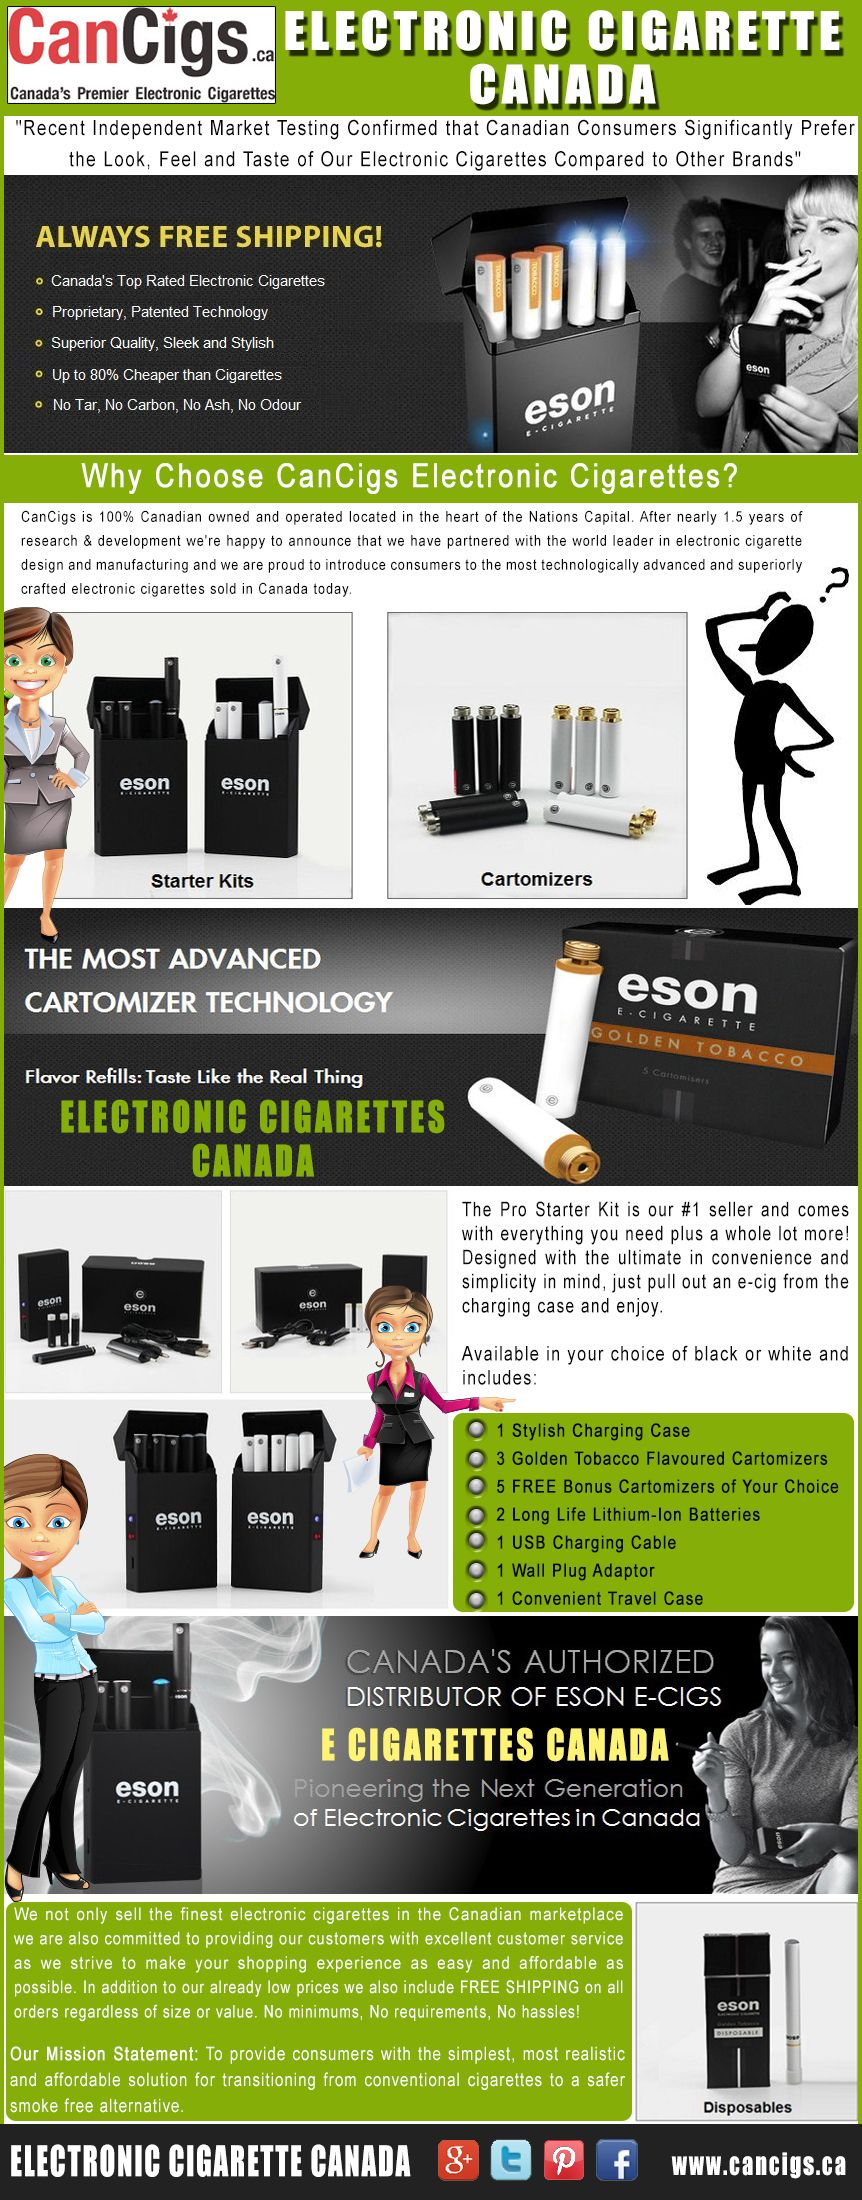 Pin on Electronic Cigarette Canada